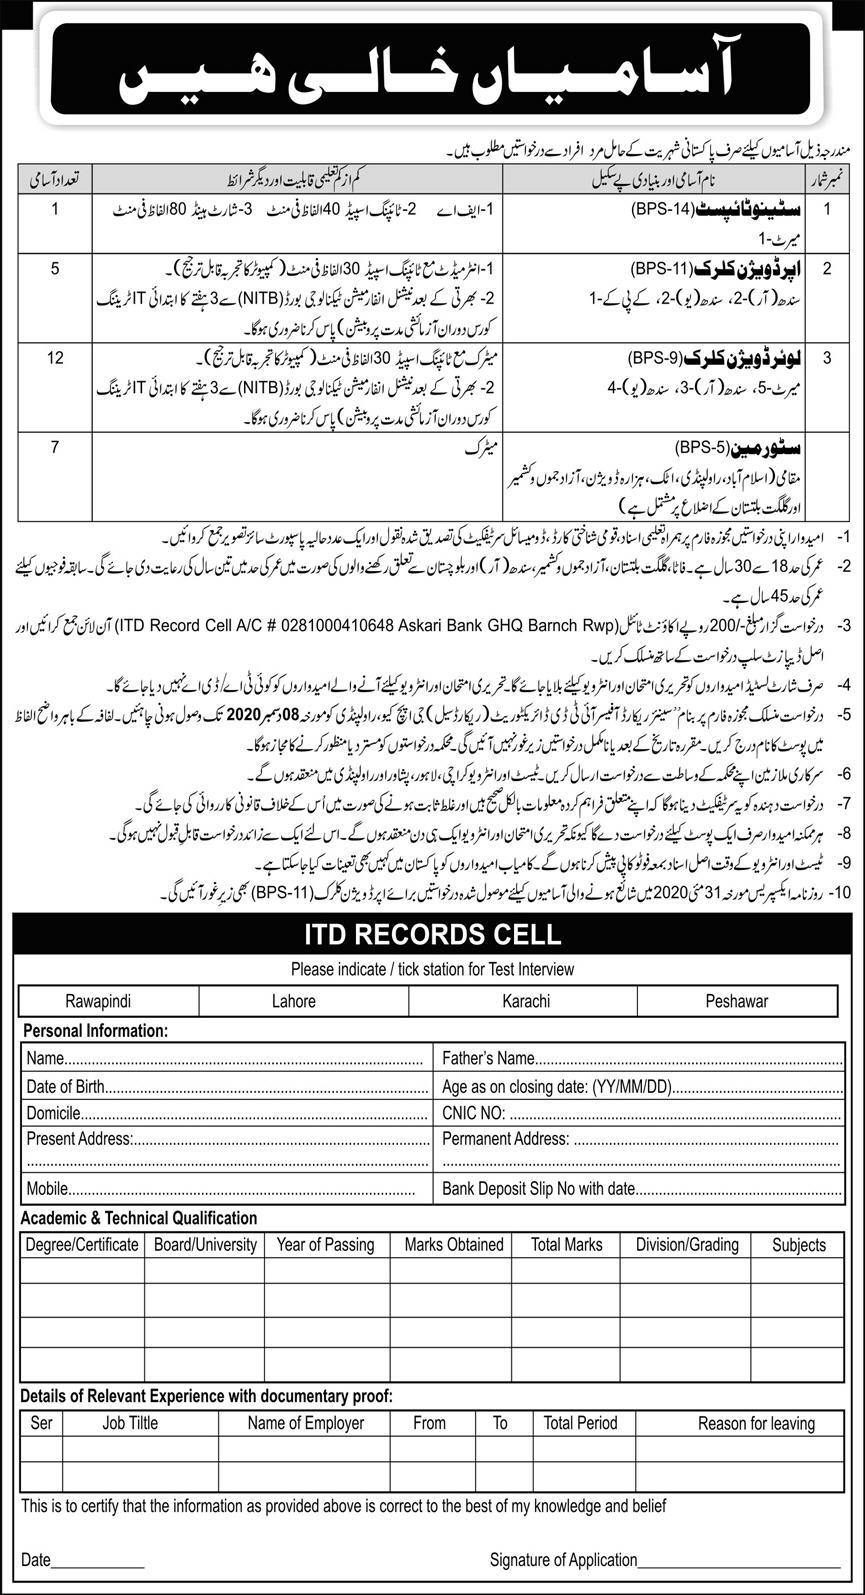 General Headquarter GHQ Rawalpindi (Pak Army) Latest Jobs For All Pakistan - Download Job Application Form Jobs 2021